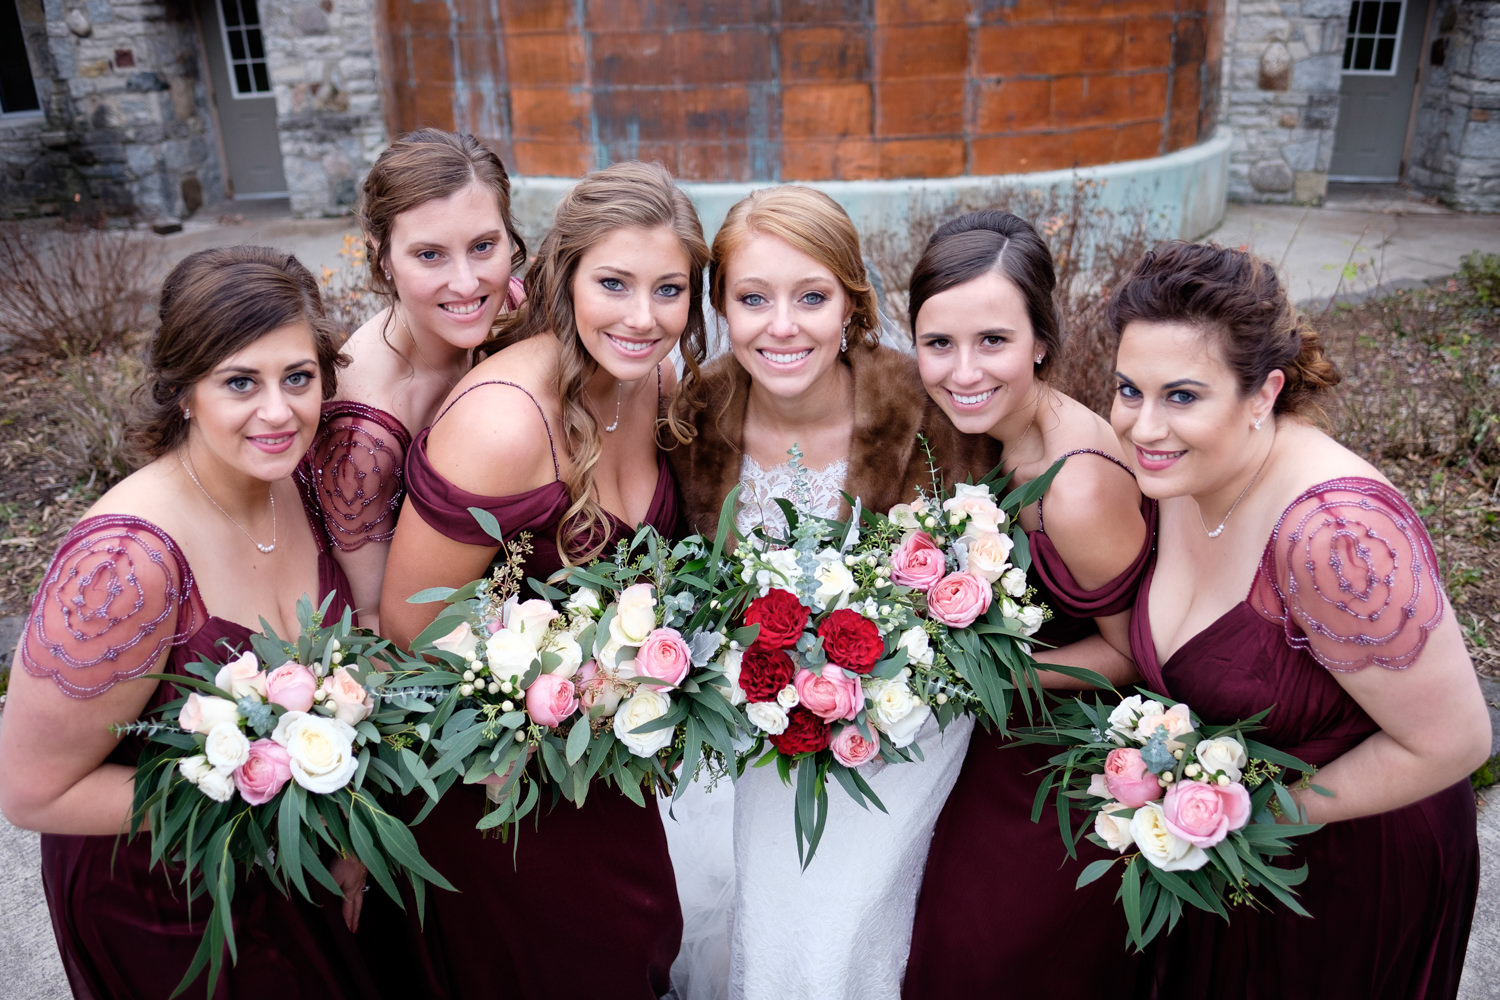 Bride and her bridesmaids at Pamperin Park in Green Bay, WI.